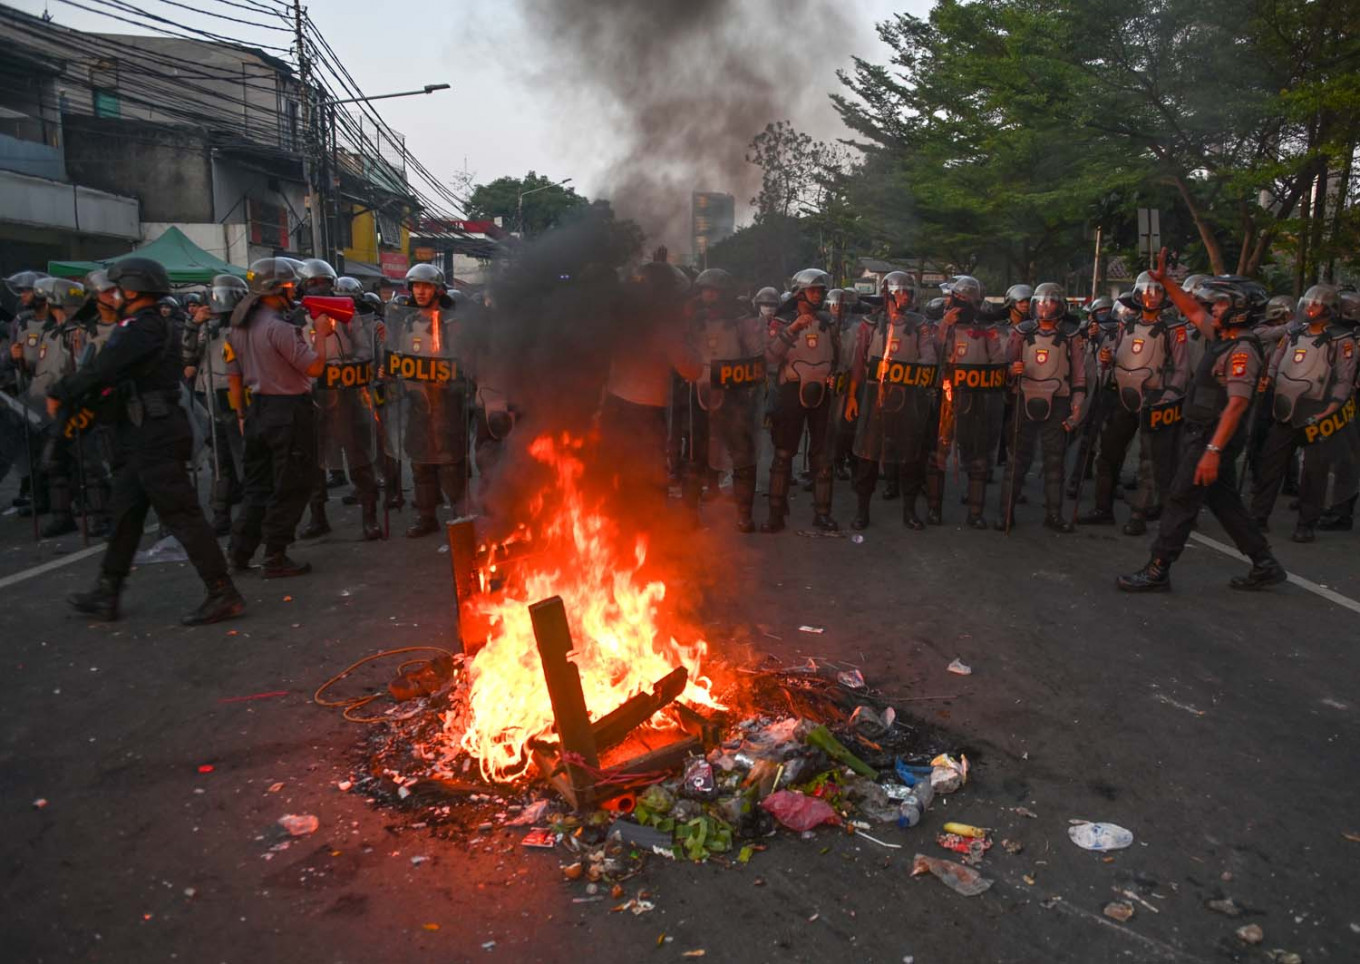 Indonesia RIOTS: Six die in violent clashes as United Kingdom issues travel WARNING